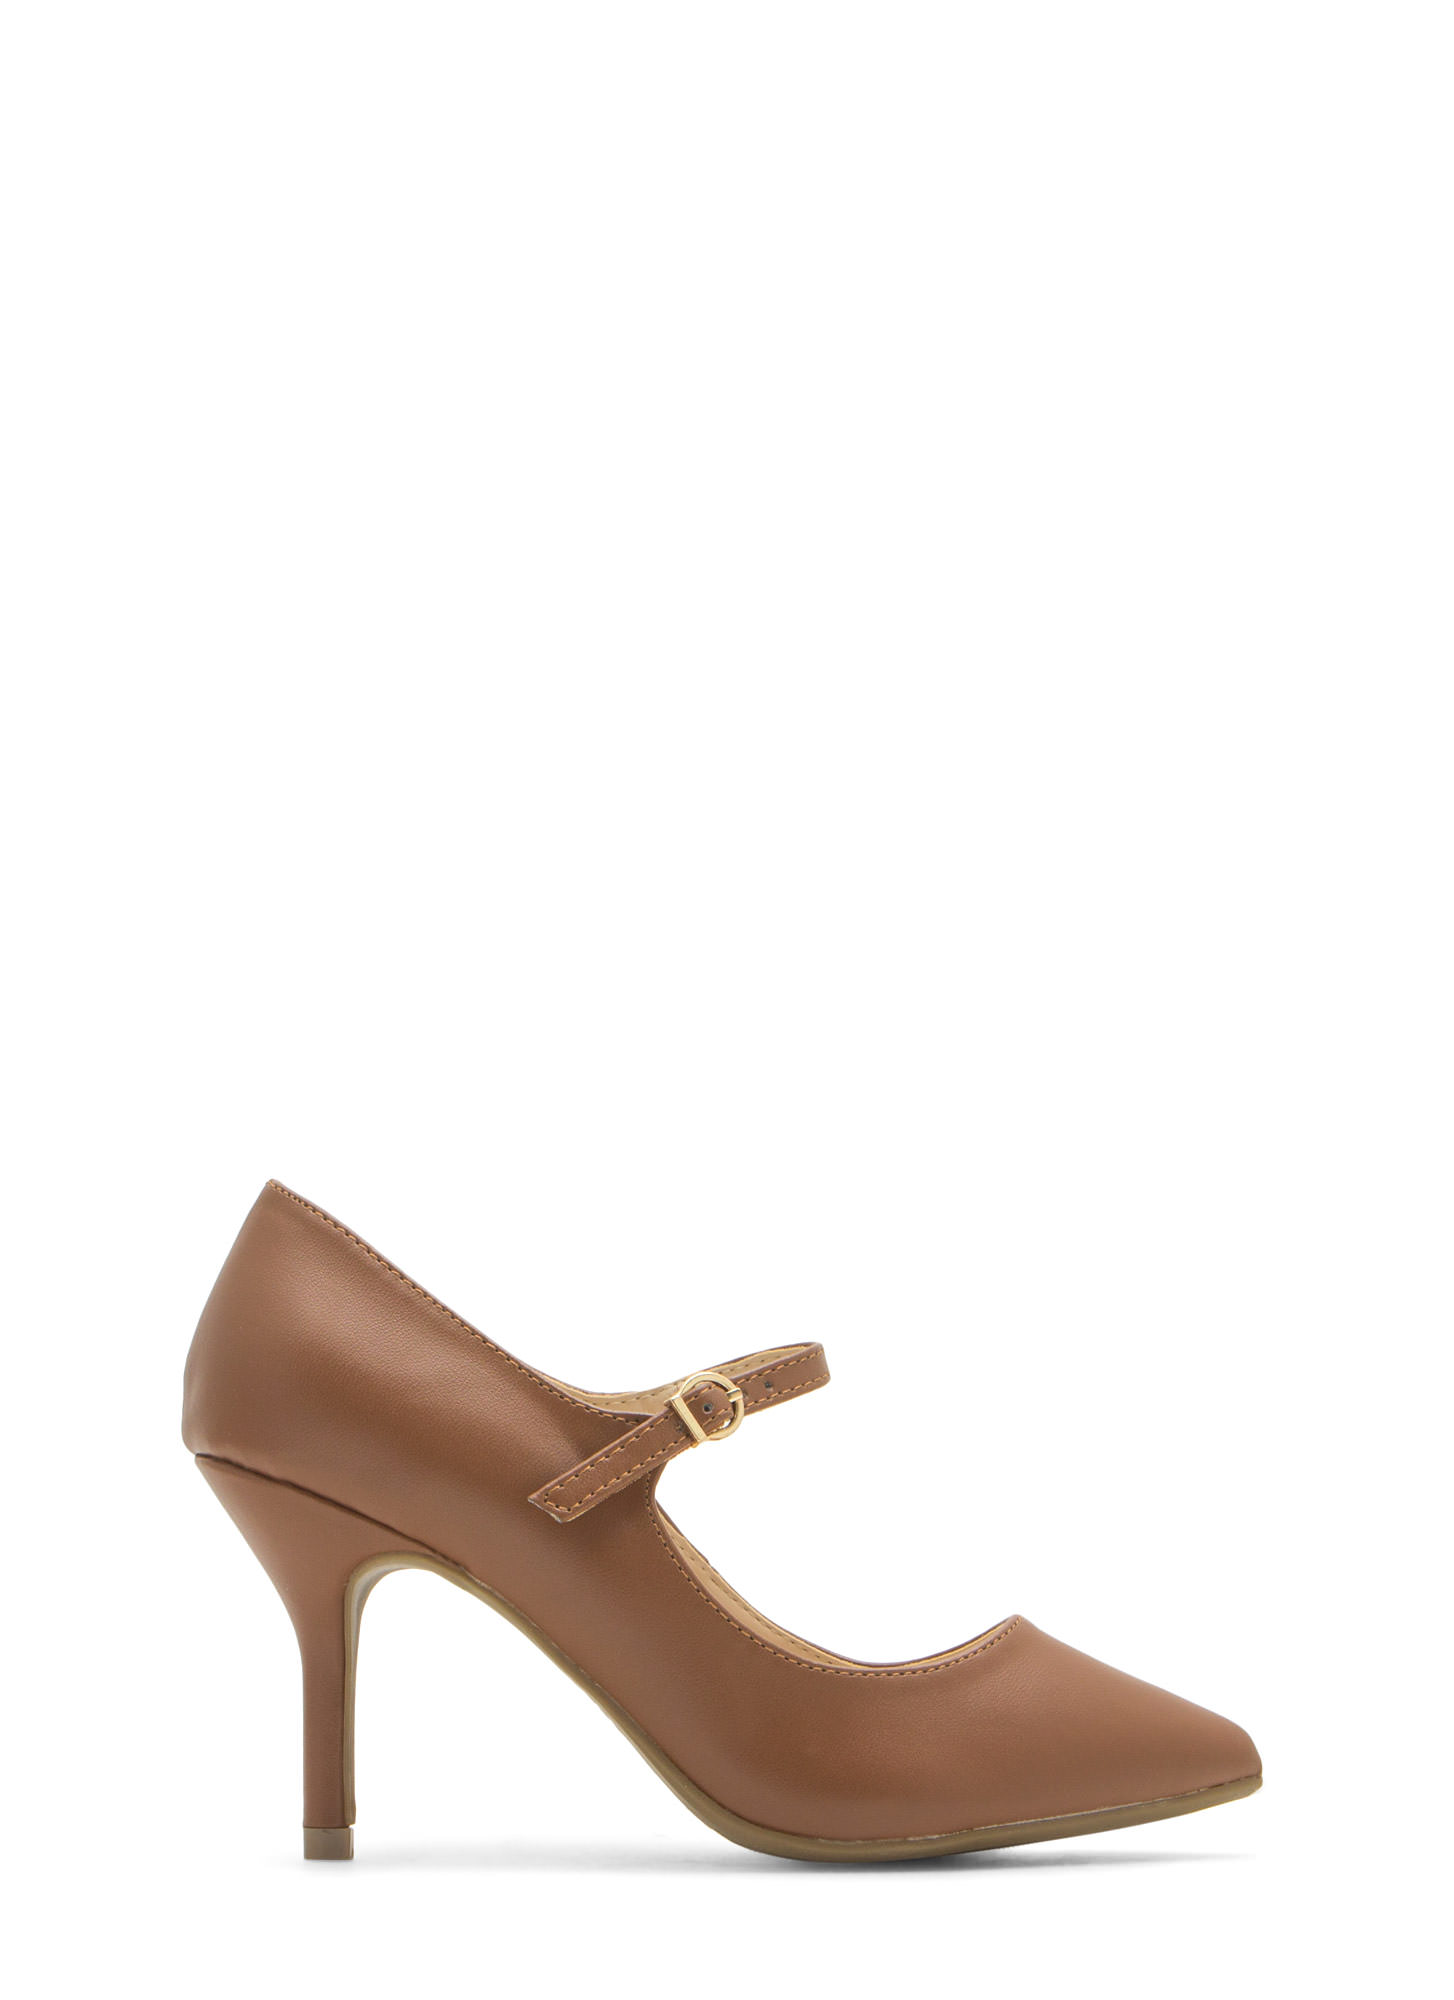 Made 4 Strutting Mary Jane Heels CHESTNUT